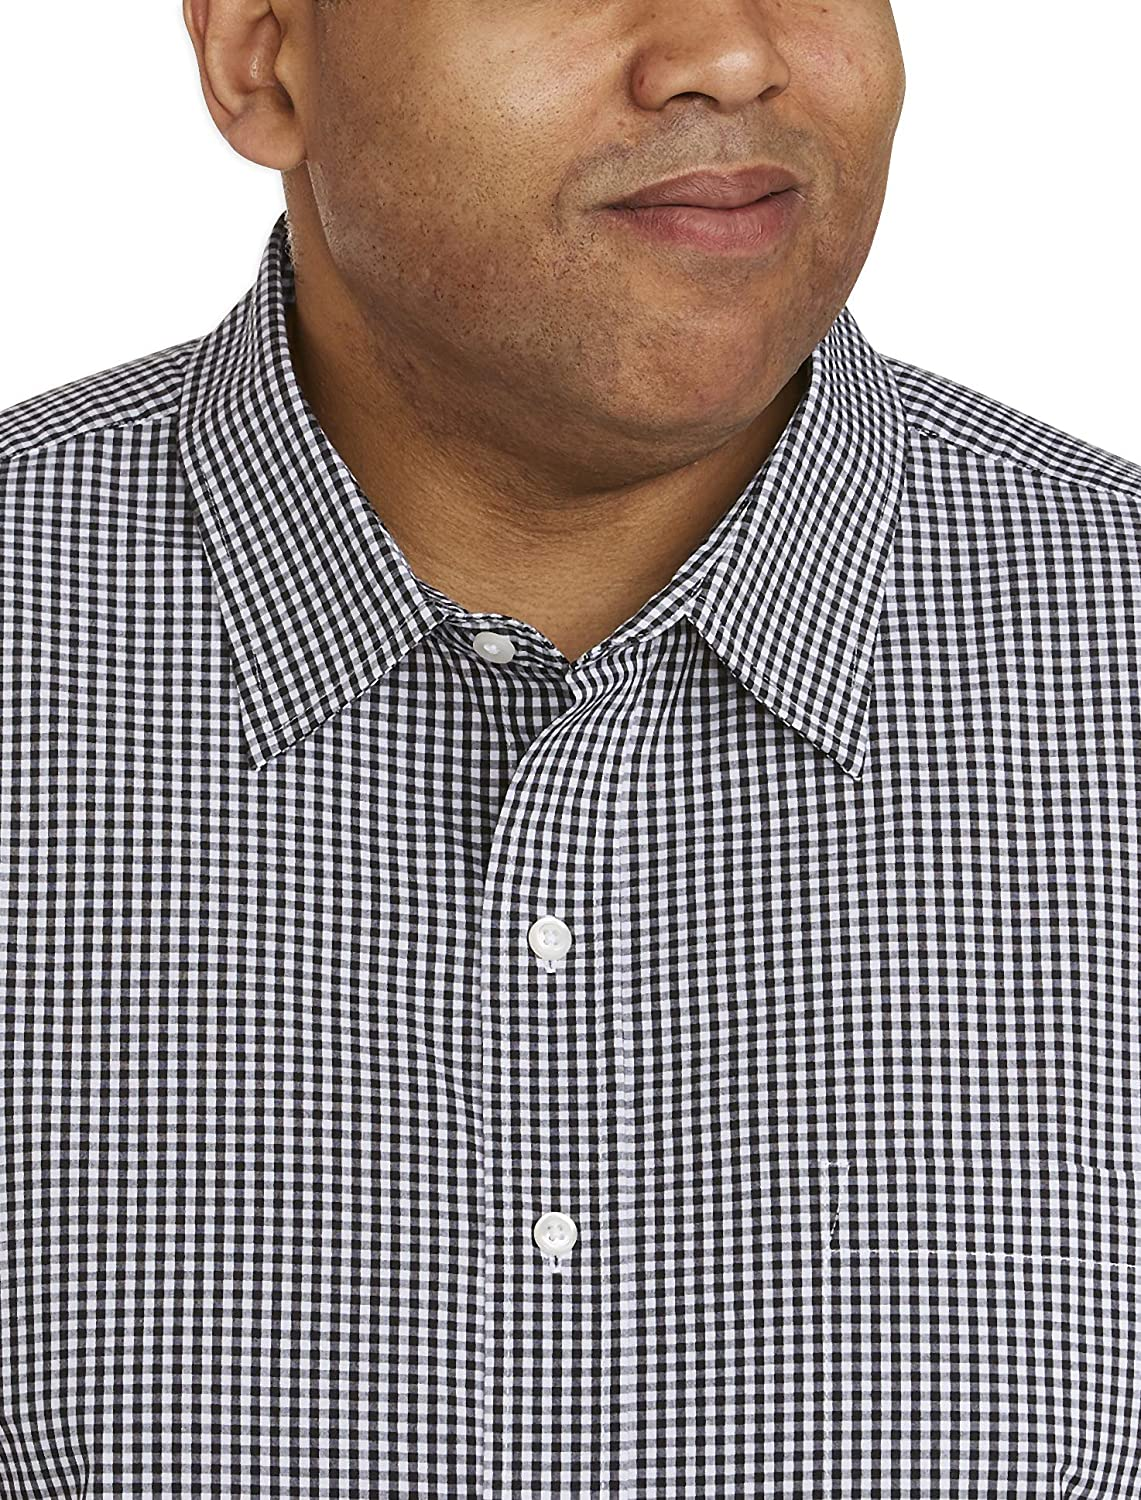 Essentials Mens Big /& Tall Short-Sleeve Gingham Shirt fit by DXL